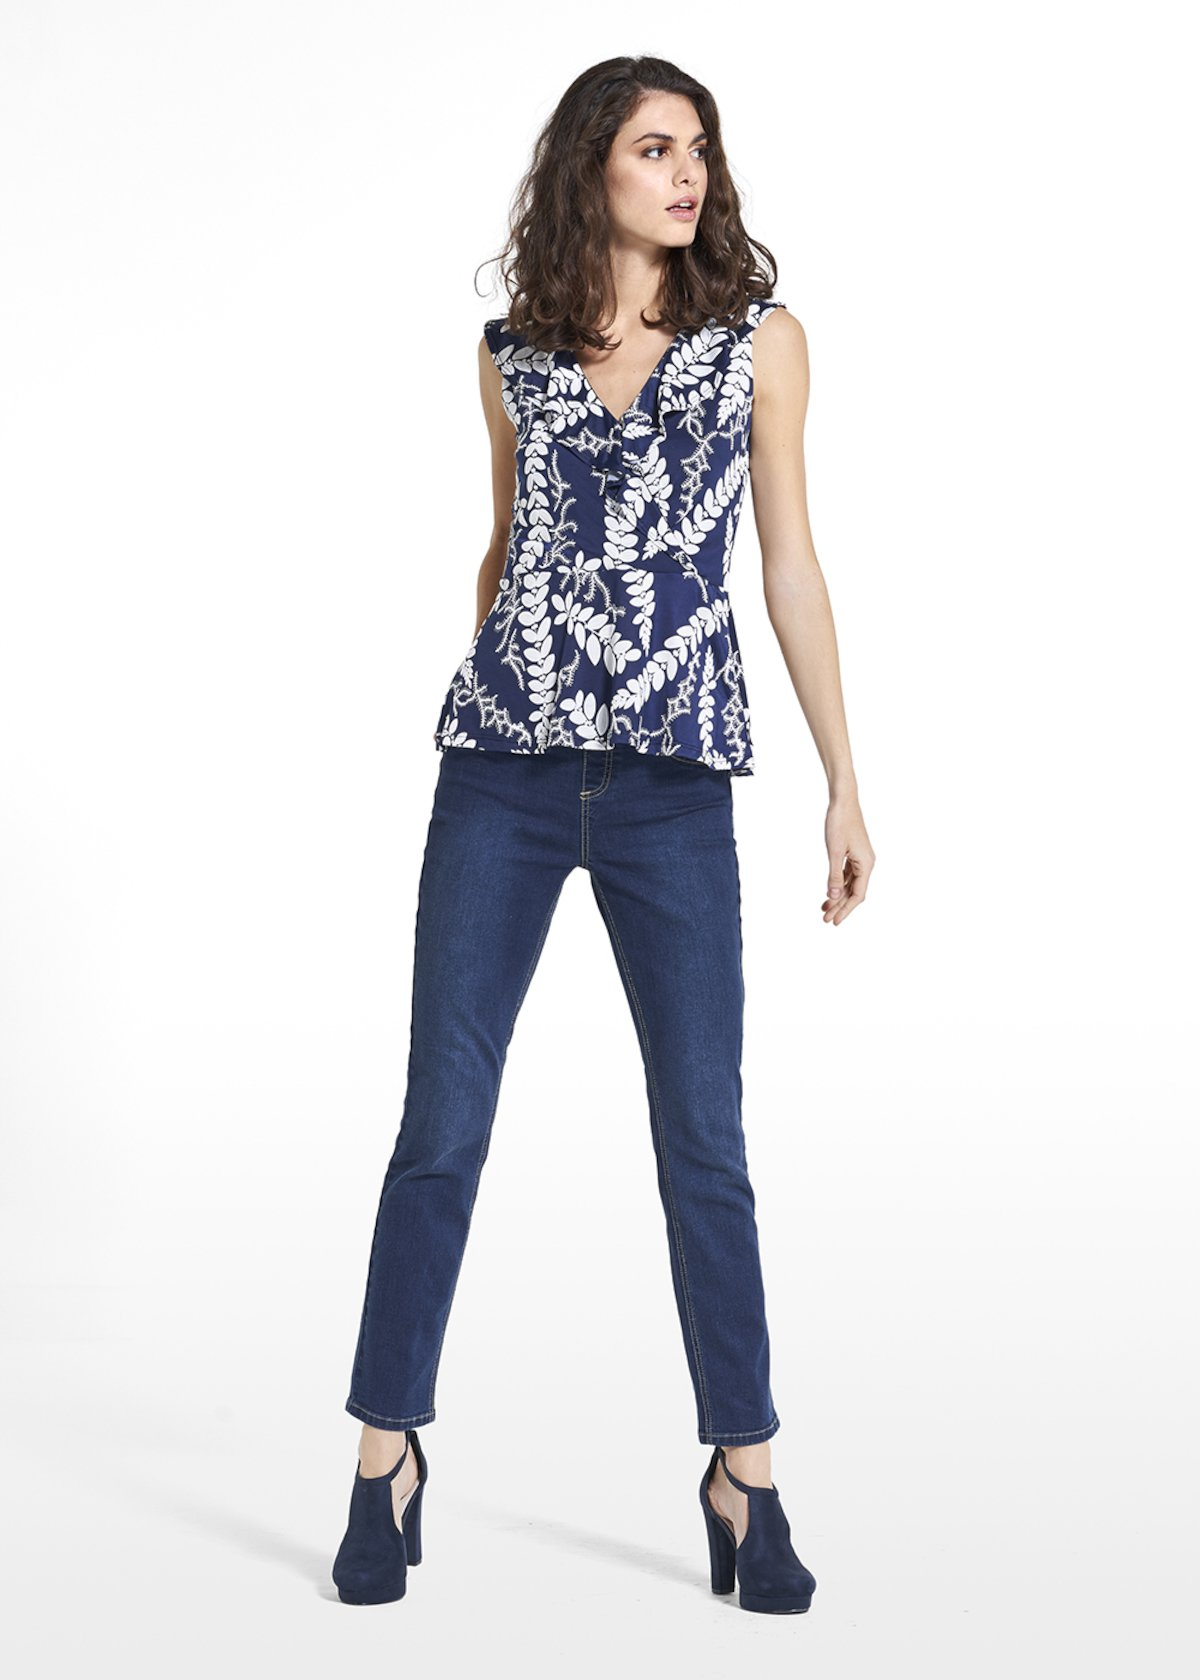 Top Trixy in jersey con rouches sullo scollo - Blue / White Fantasia - Donna - Immagine categoria